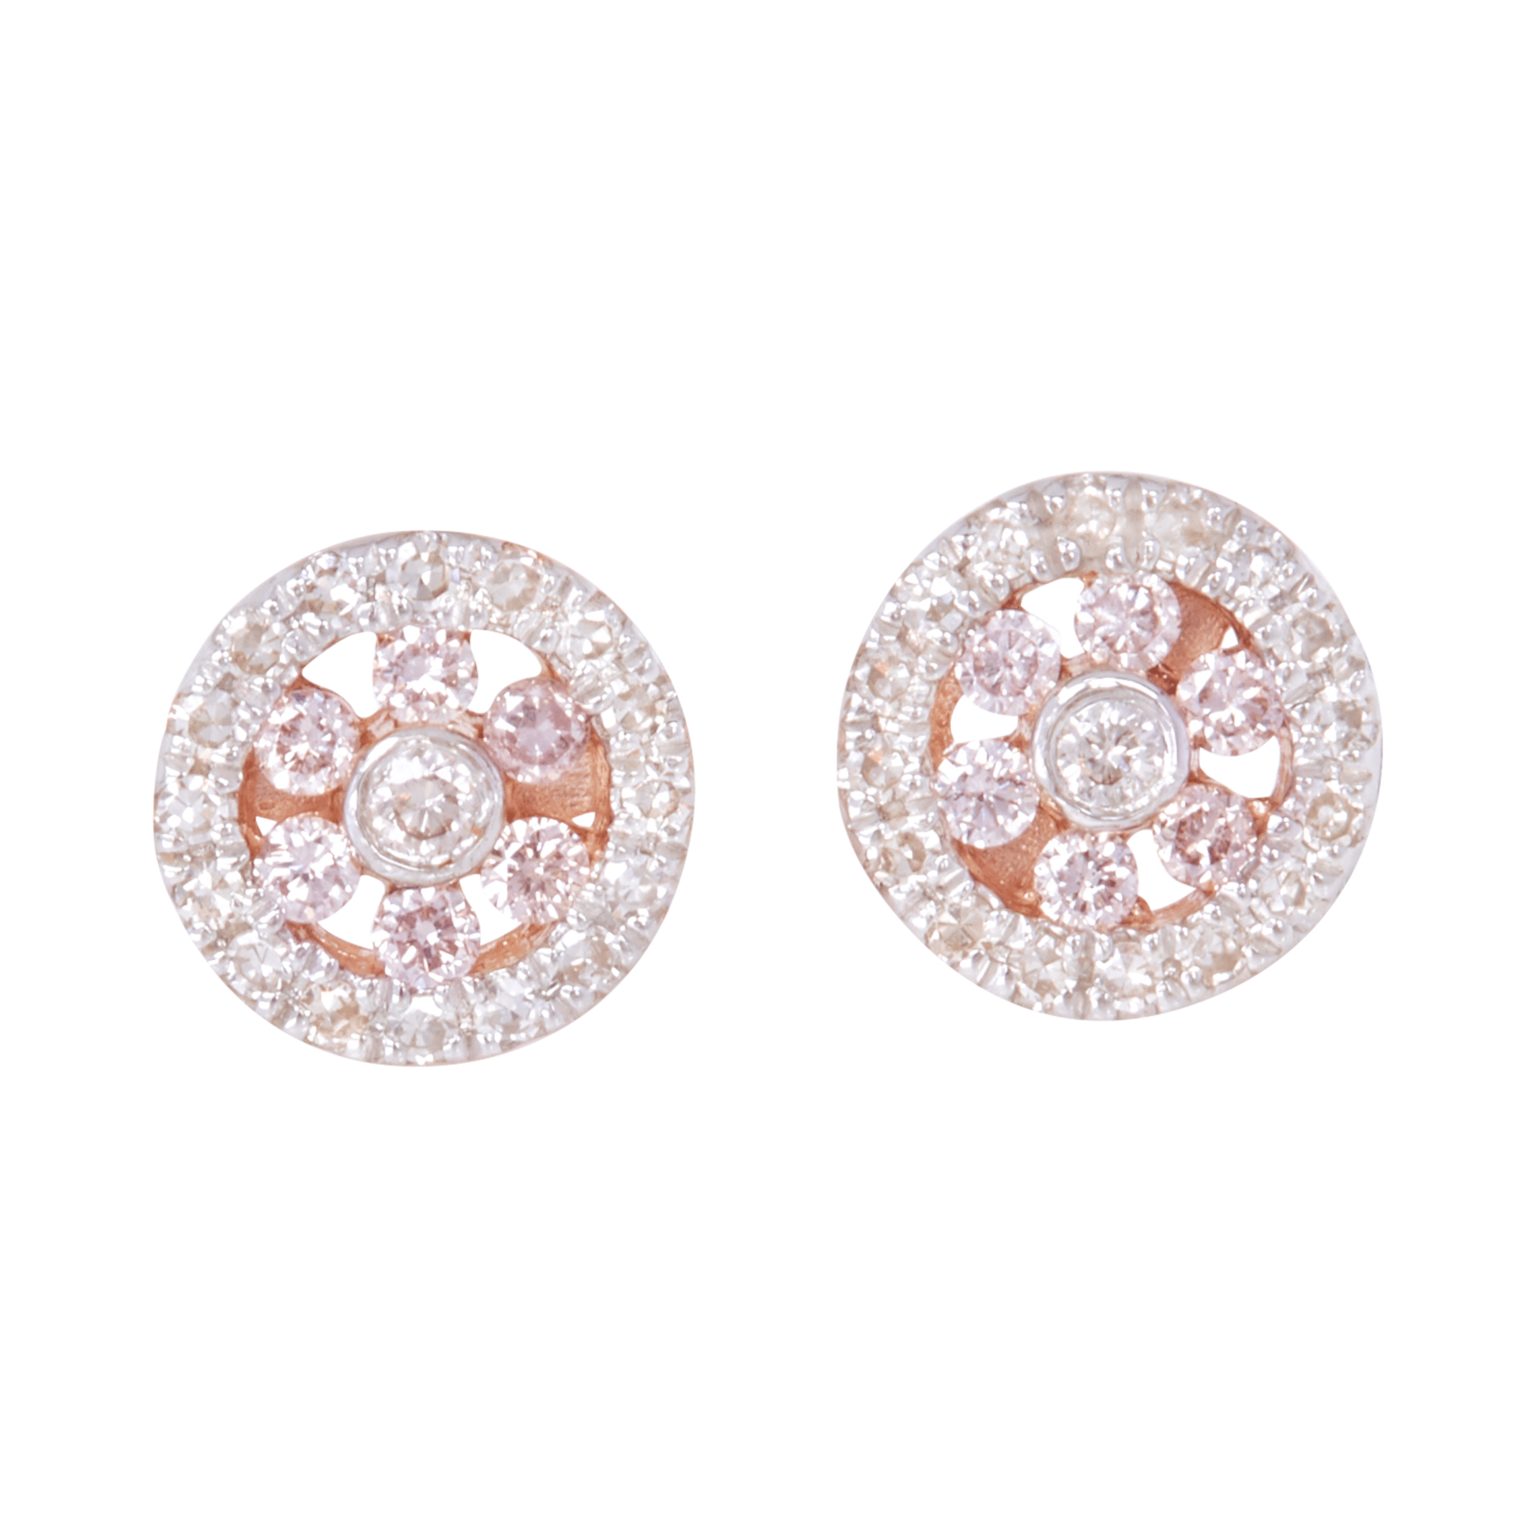 Eminence Pinks Diamond Halo Earrings